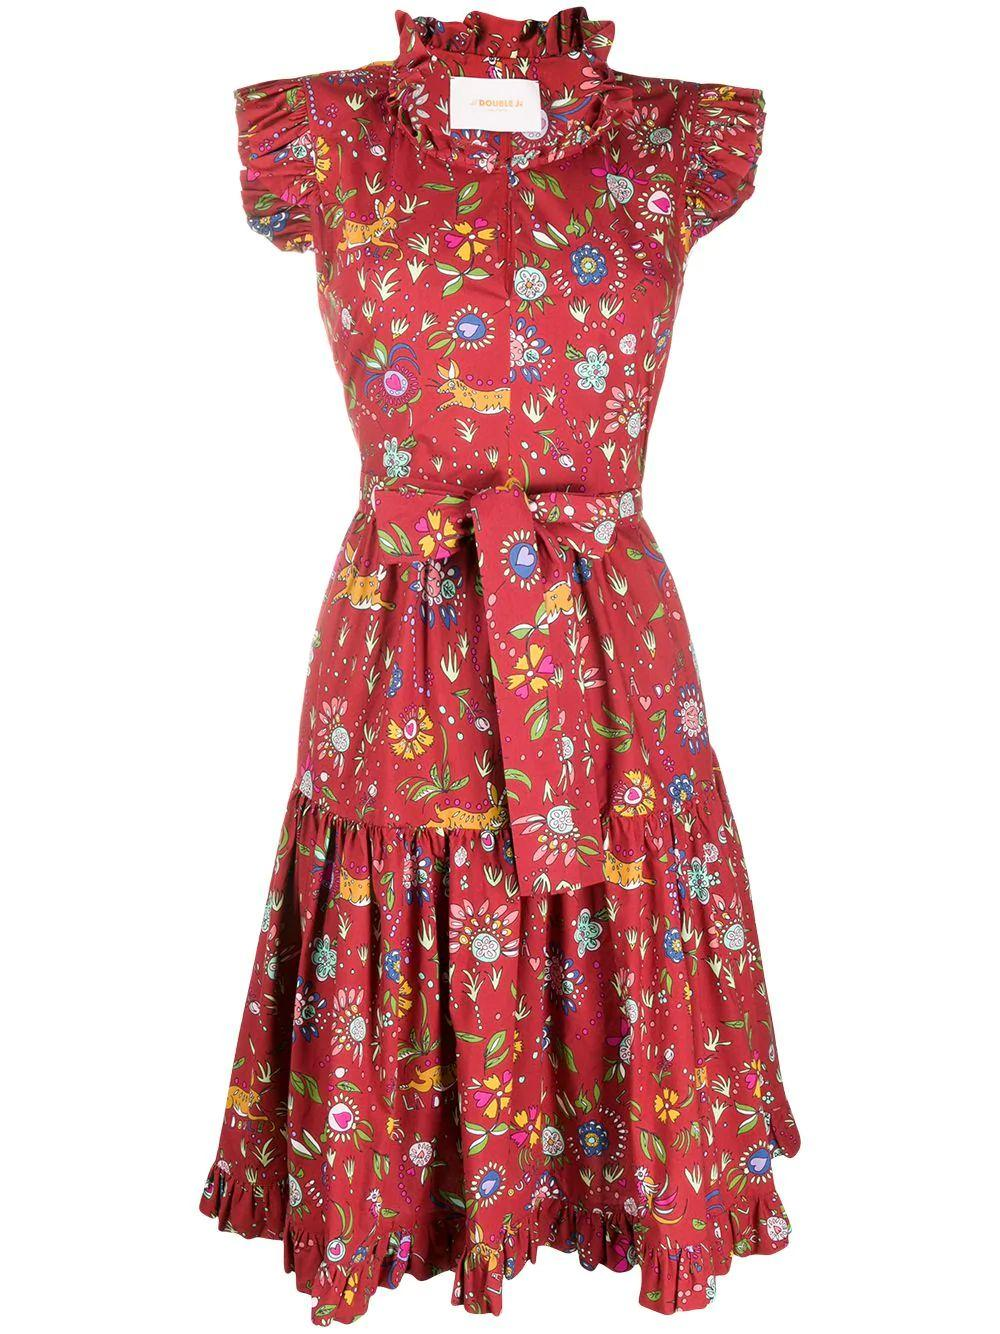 Short And Sassy Floral Dress Item # DRE0003-COT001-PF20